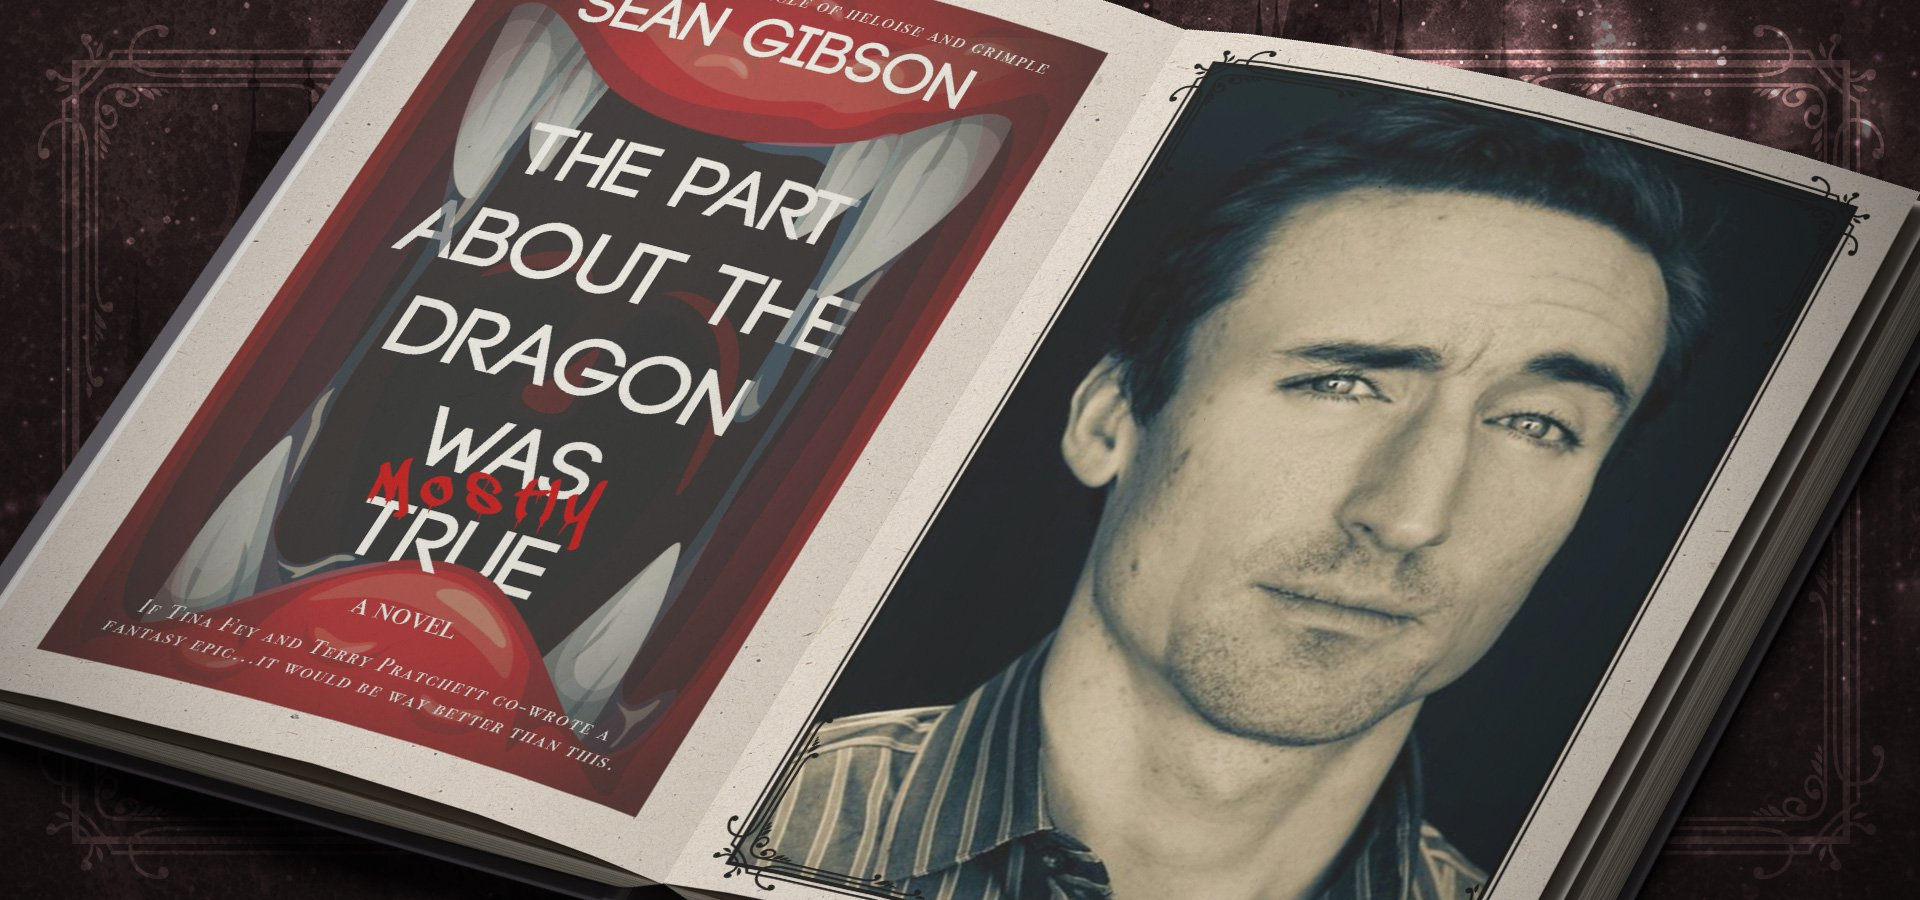 The Part About the Dragon Was (Mostly) True by Sean Gibson